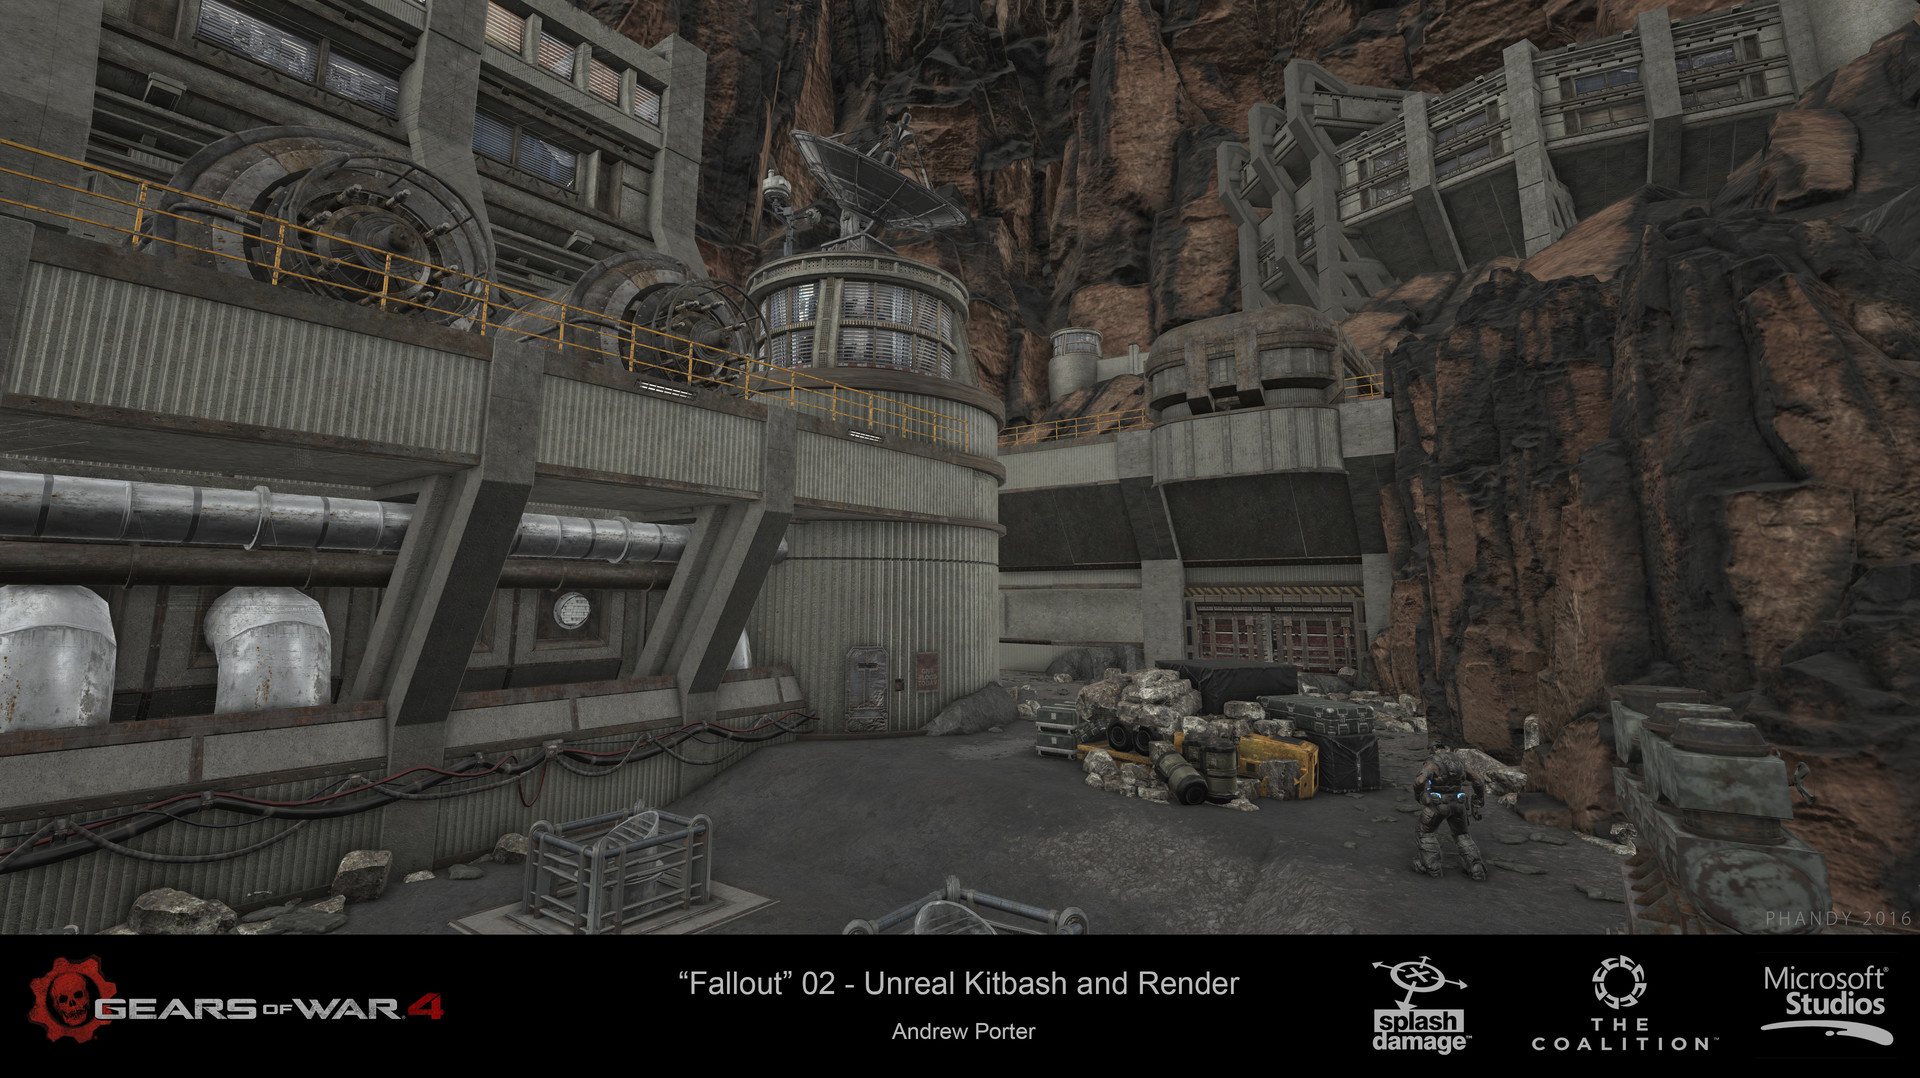 Andrew porter phandy2016 gow4 fallout02